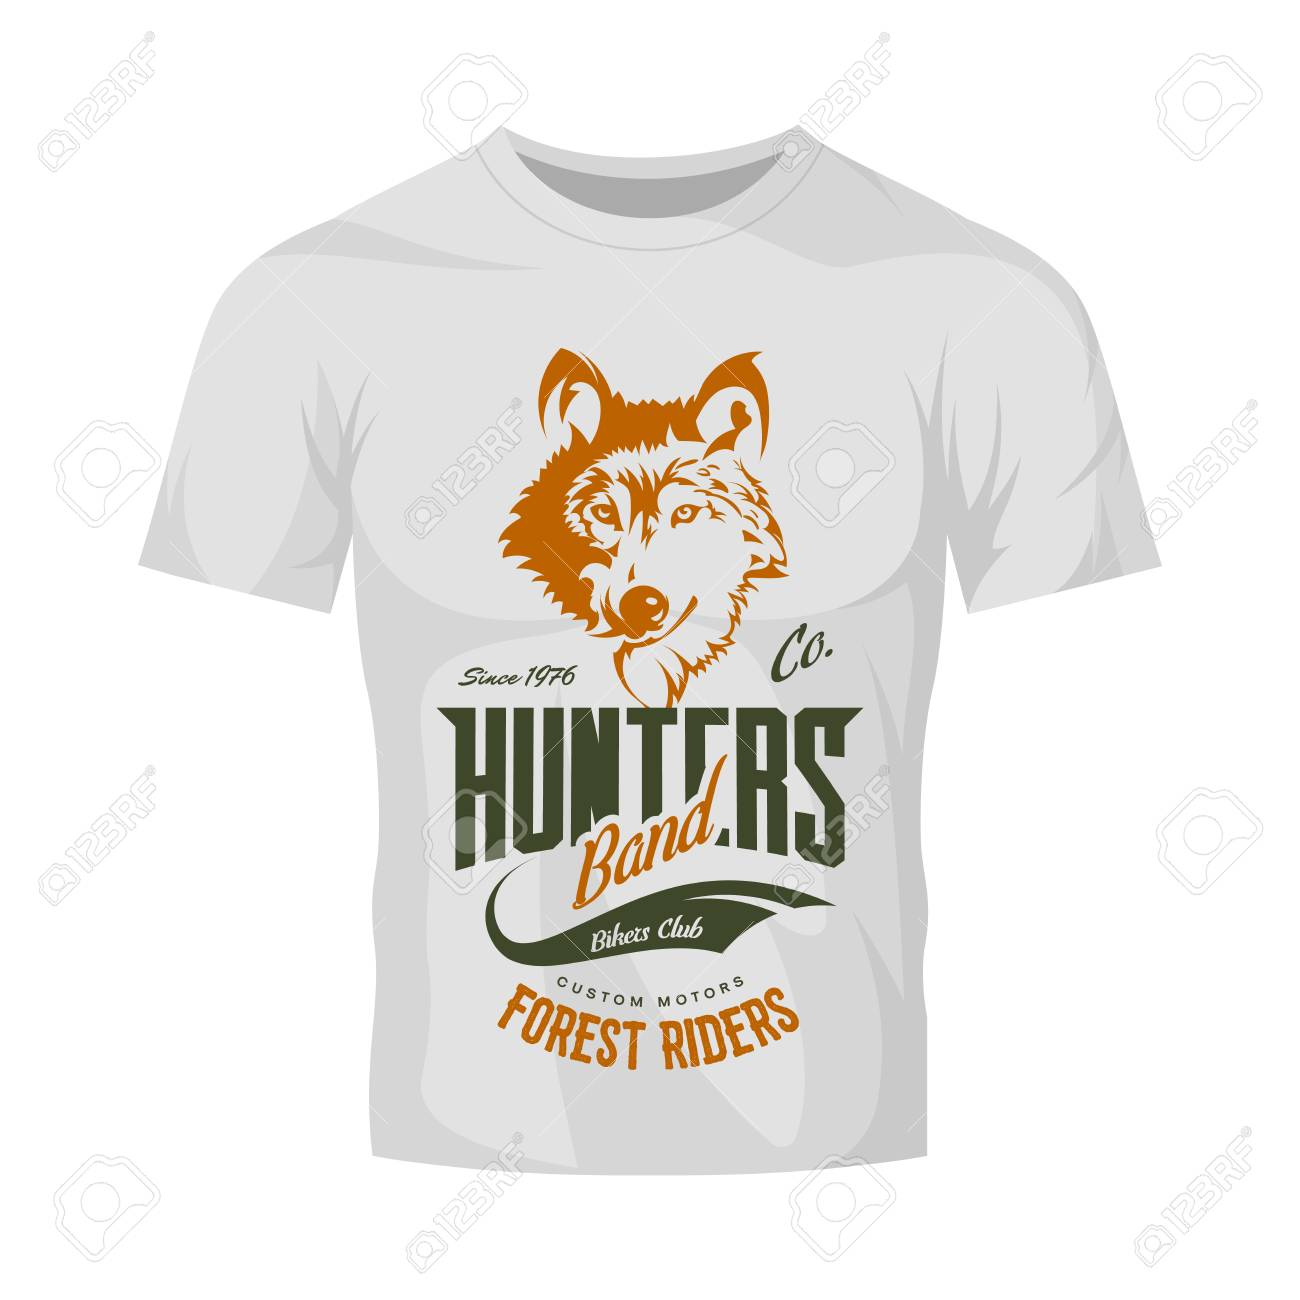 d742ff16500d Vector - Vintage wolf custom motors club vector logo on white t-shirt  mock-up. Premium quality bikers band logotype tee-shirt emblem illustration.